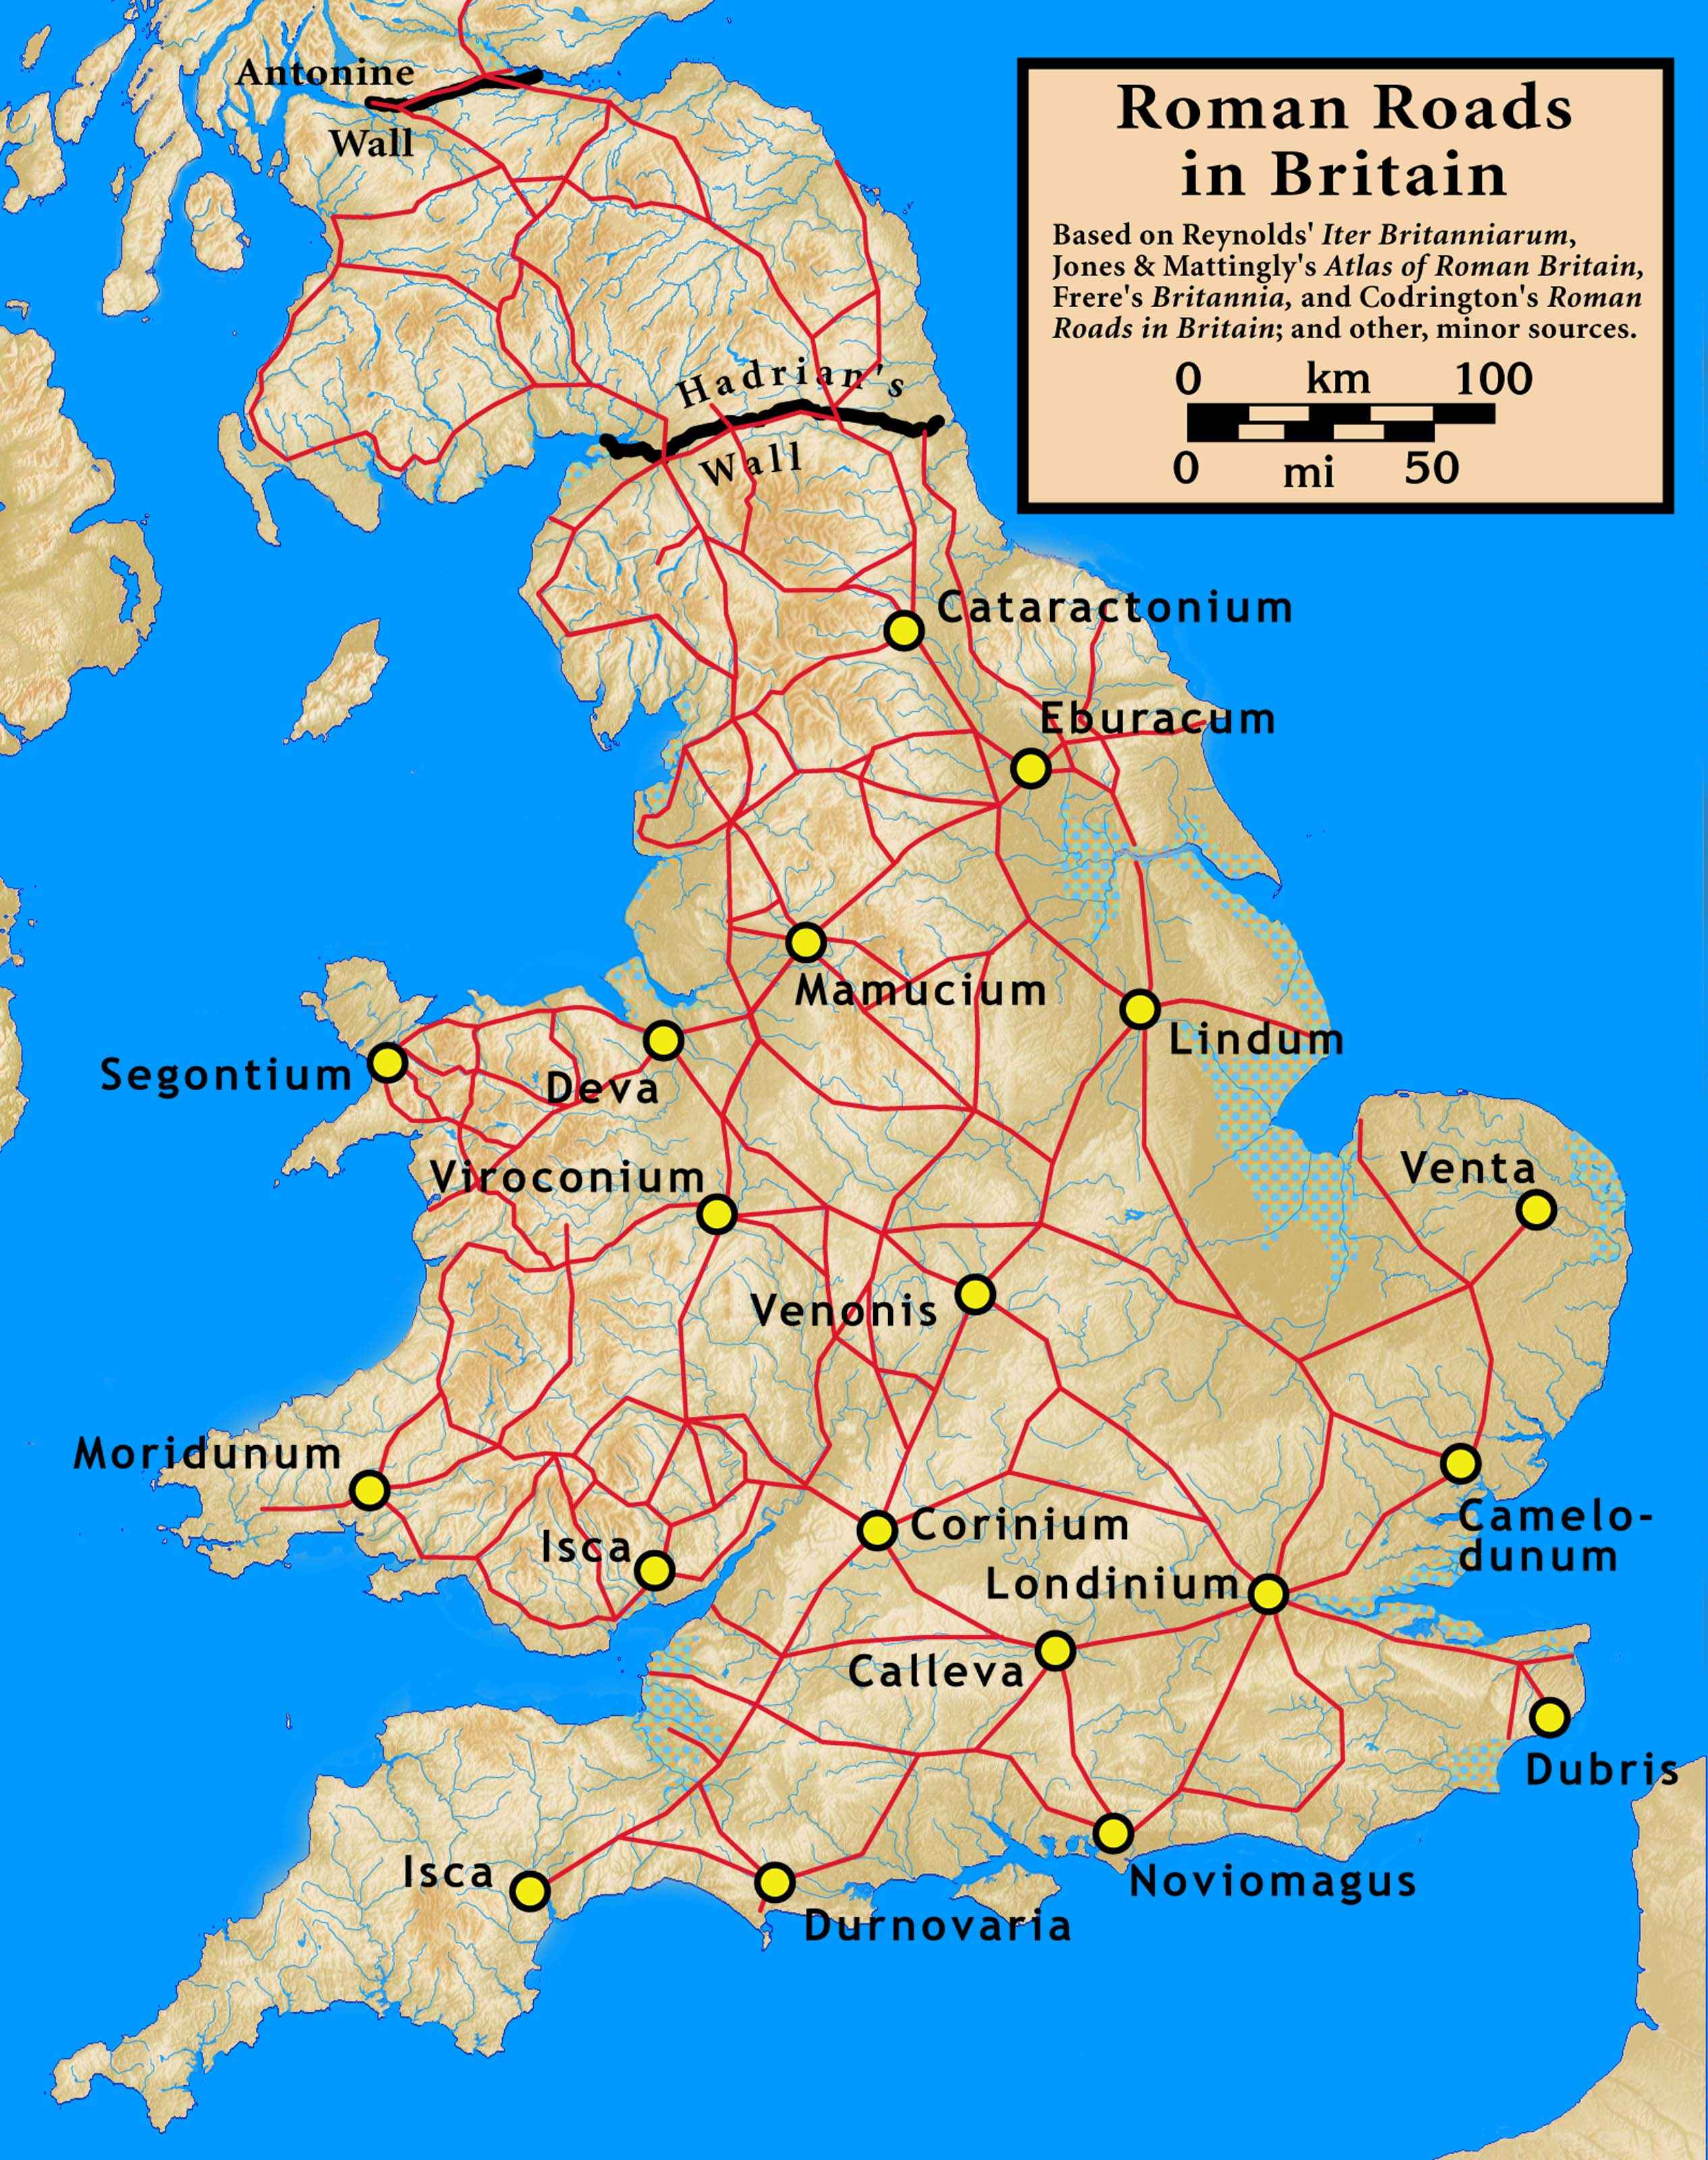 Roman roads in Britannia - Wikipedia